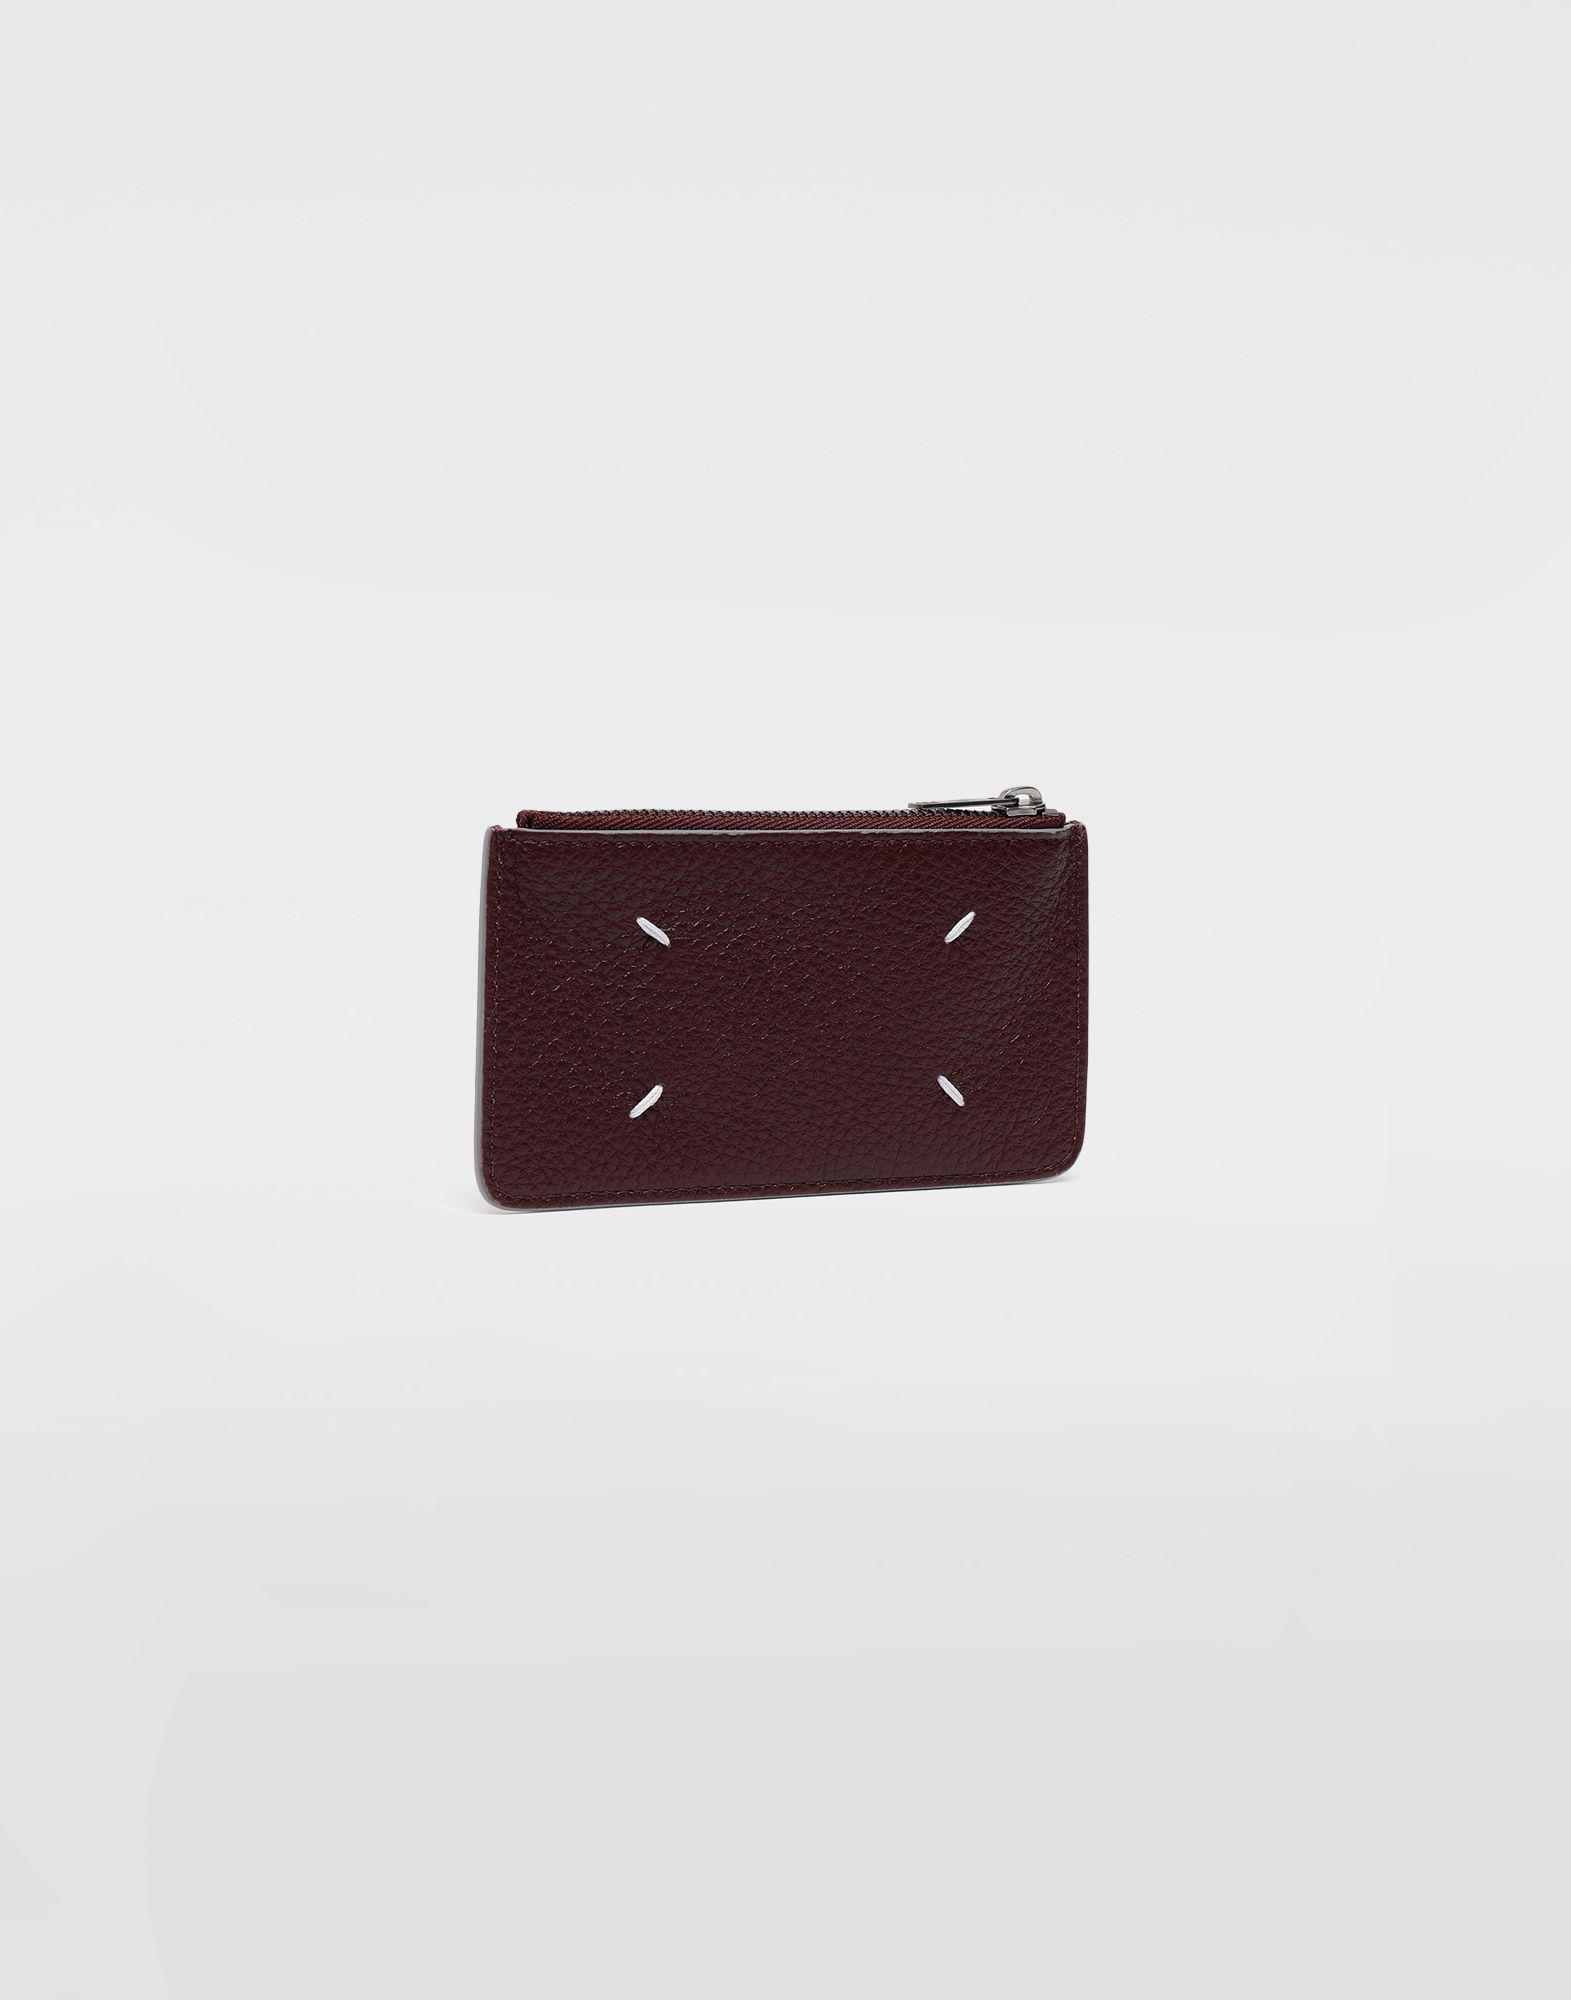 MAISON MARGIELA Leather zip wallet Wallets Man r